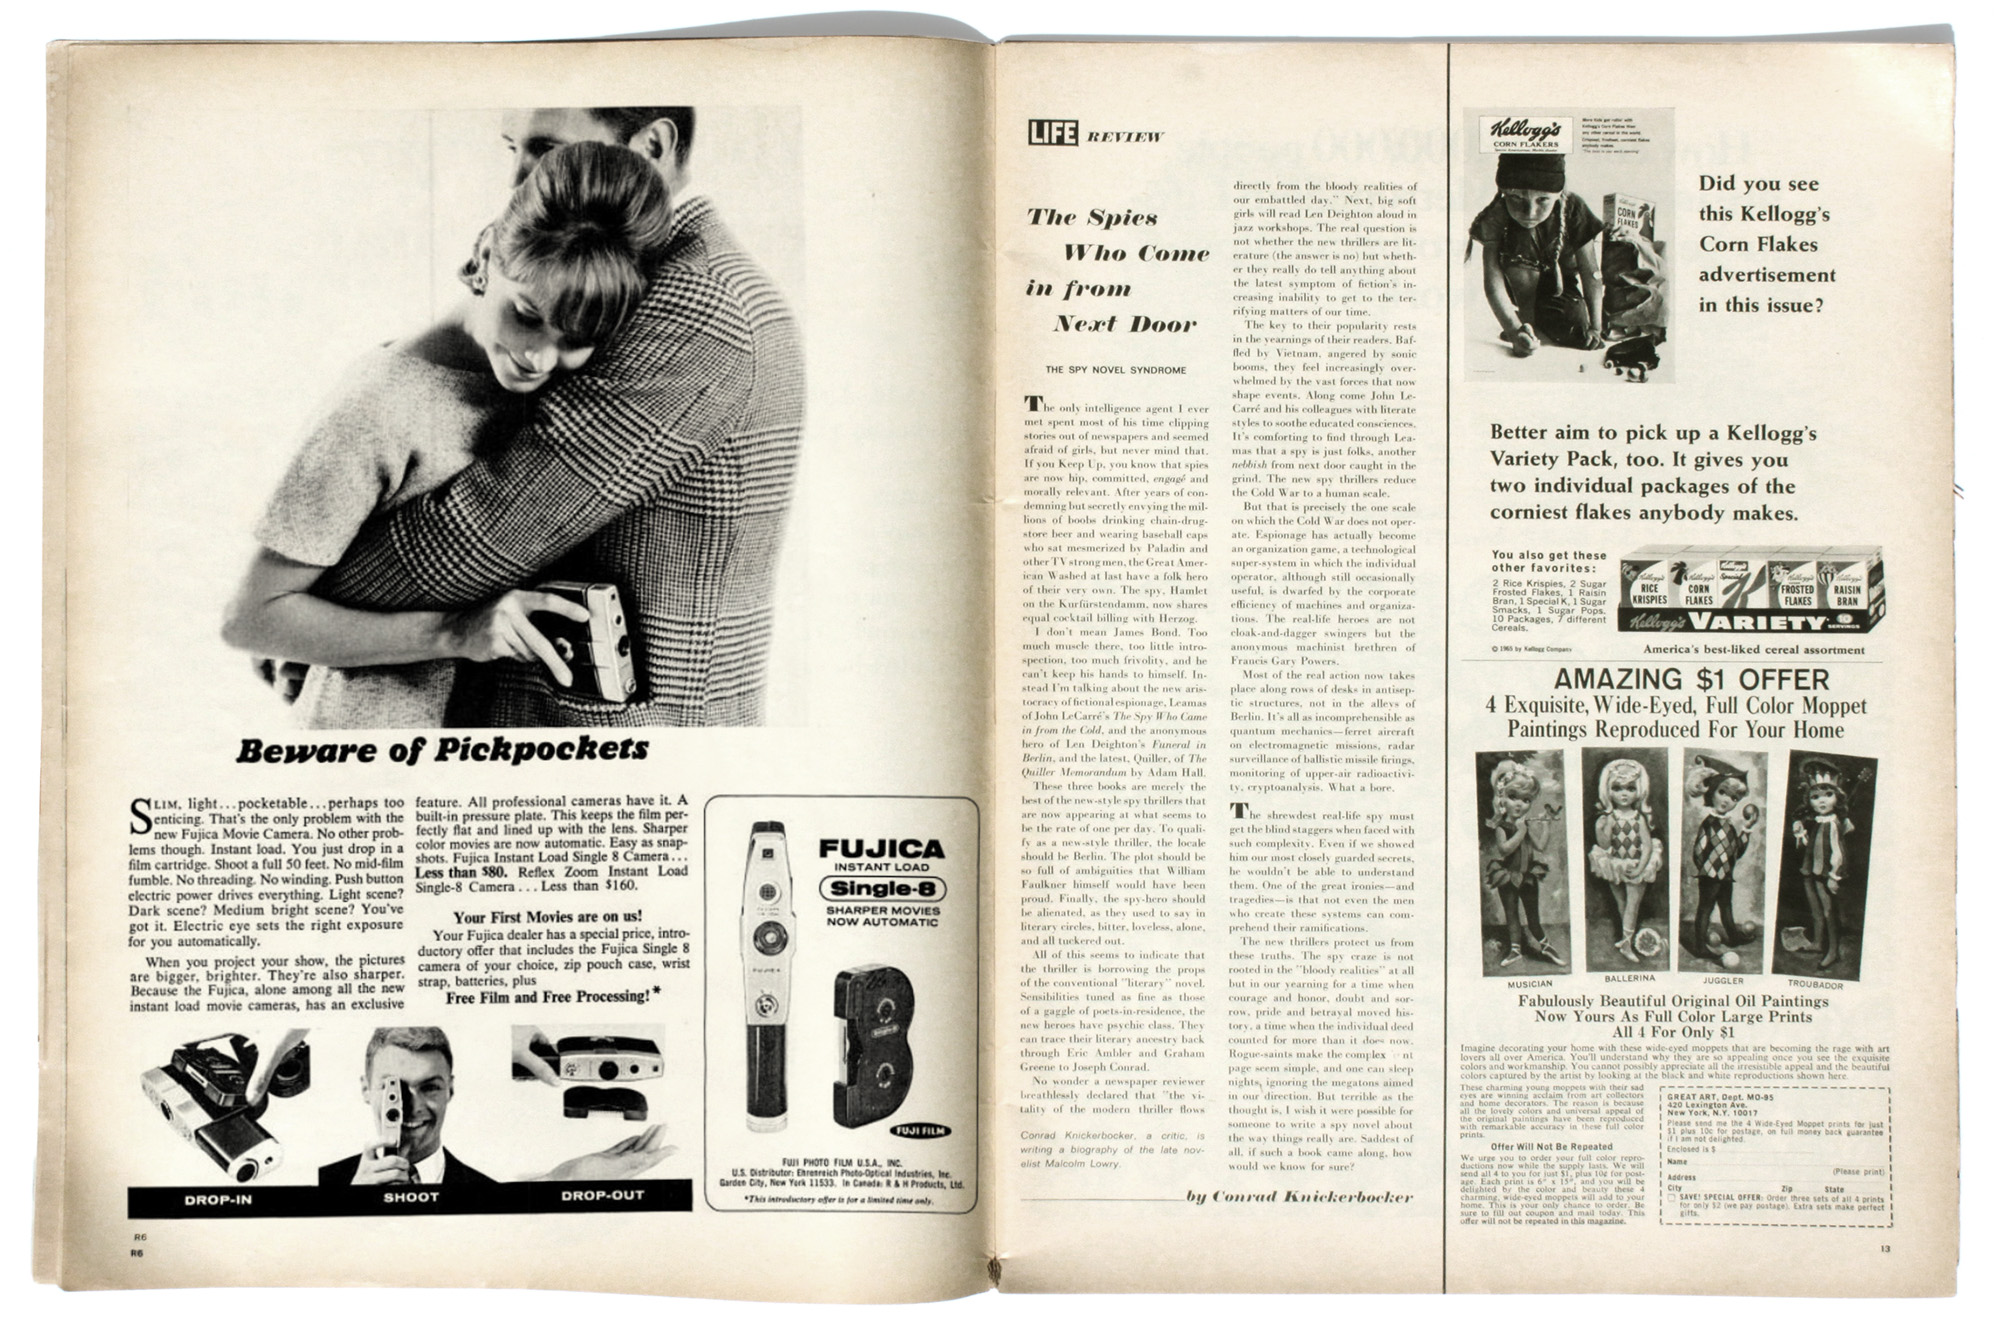 Fujica 'Single 8' May 1966 Full Page in LIFE Magazine